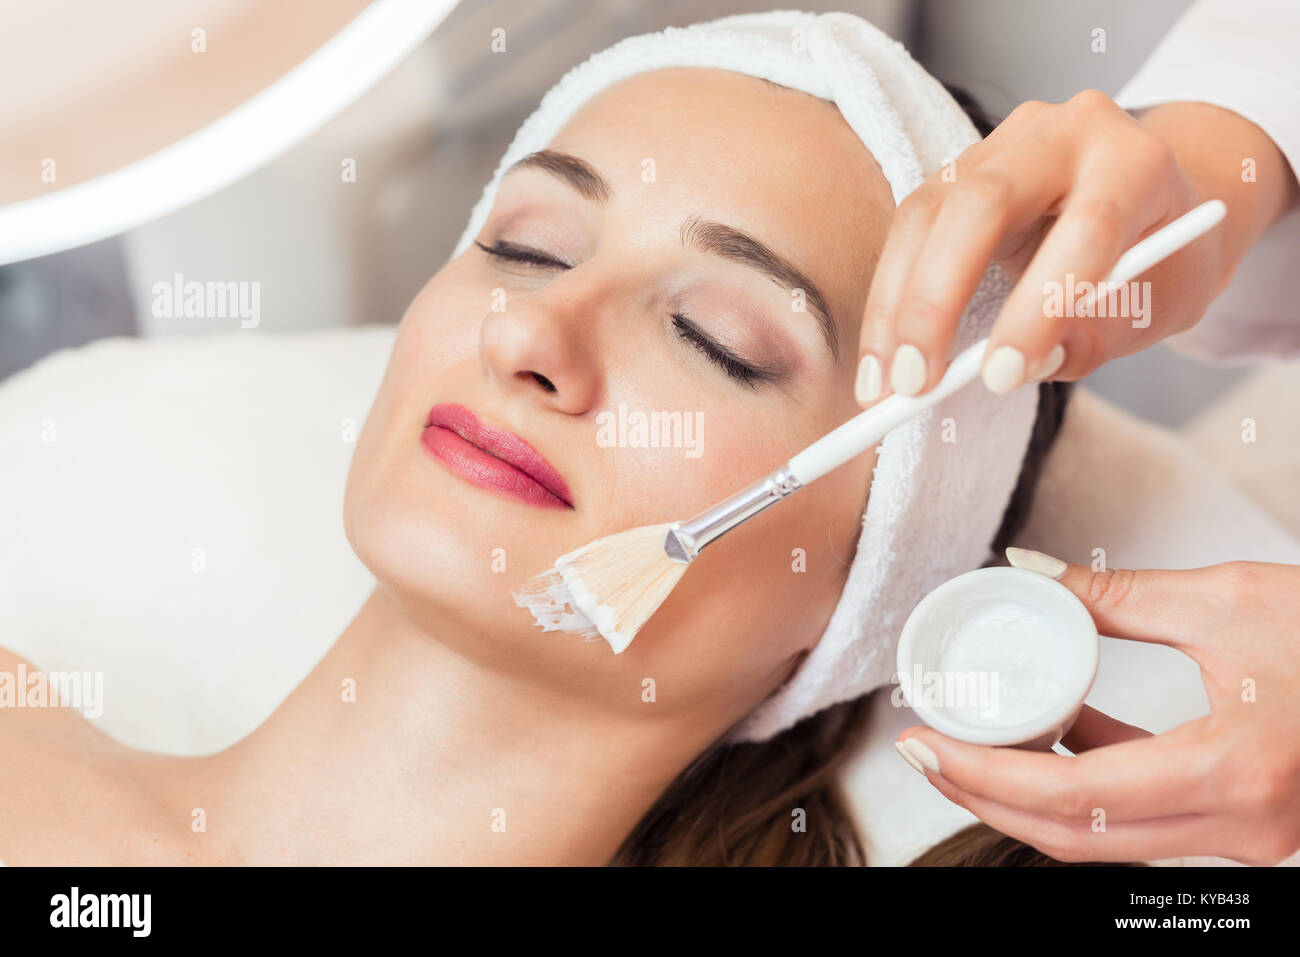 Close-up of a beautiful woman relaxing during facial treatment i Stock Photo